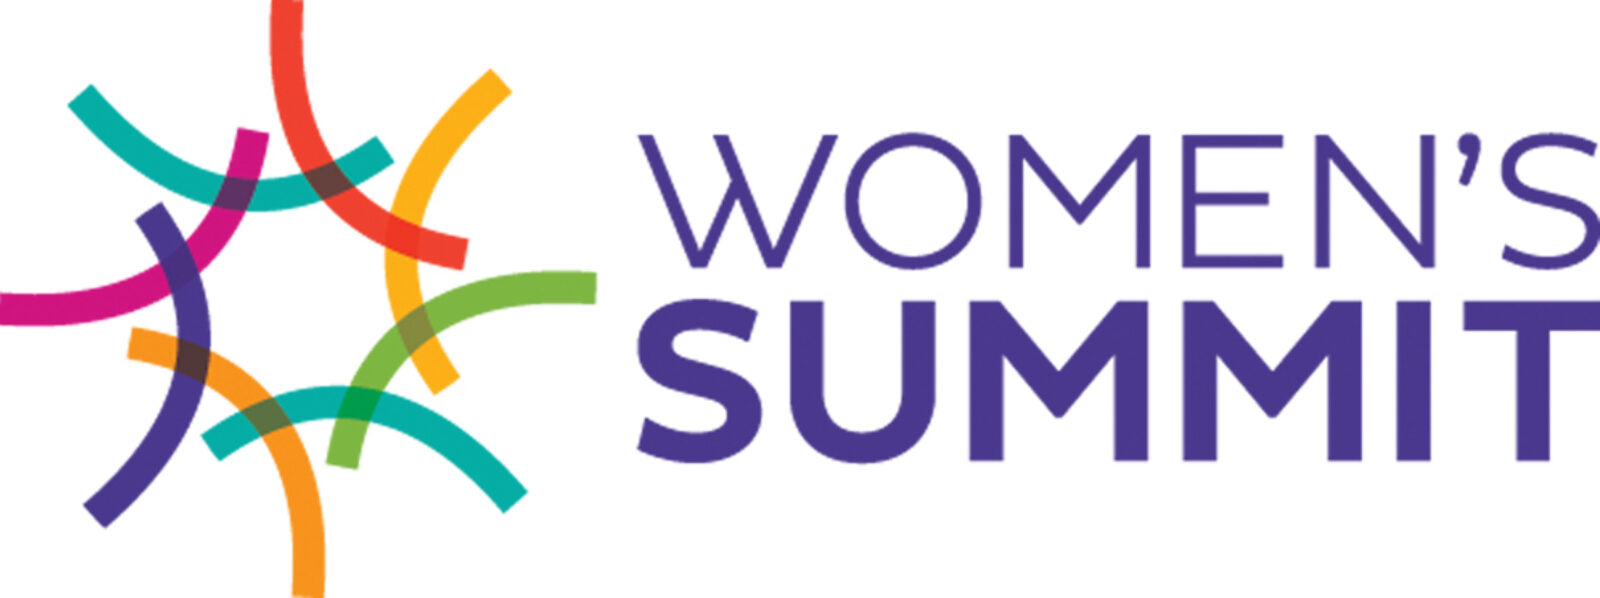 Women's Summit Scheduled for San Juan Oaks